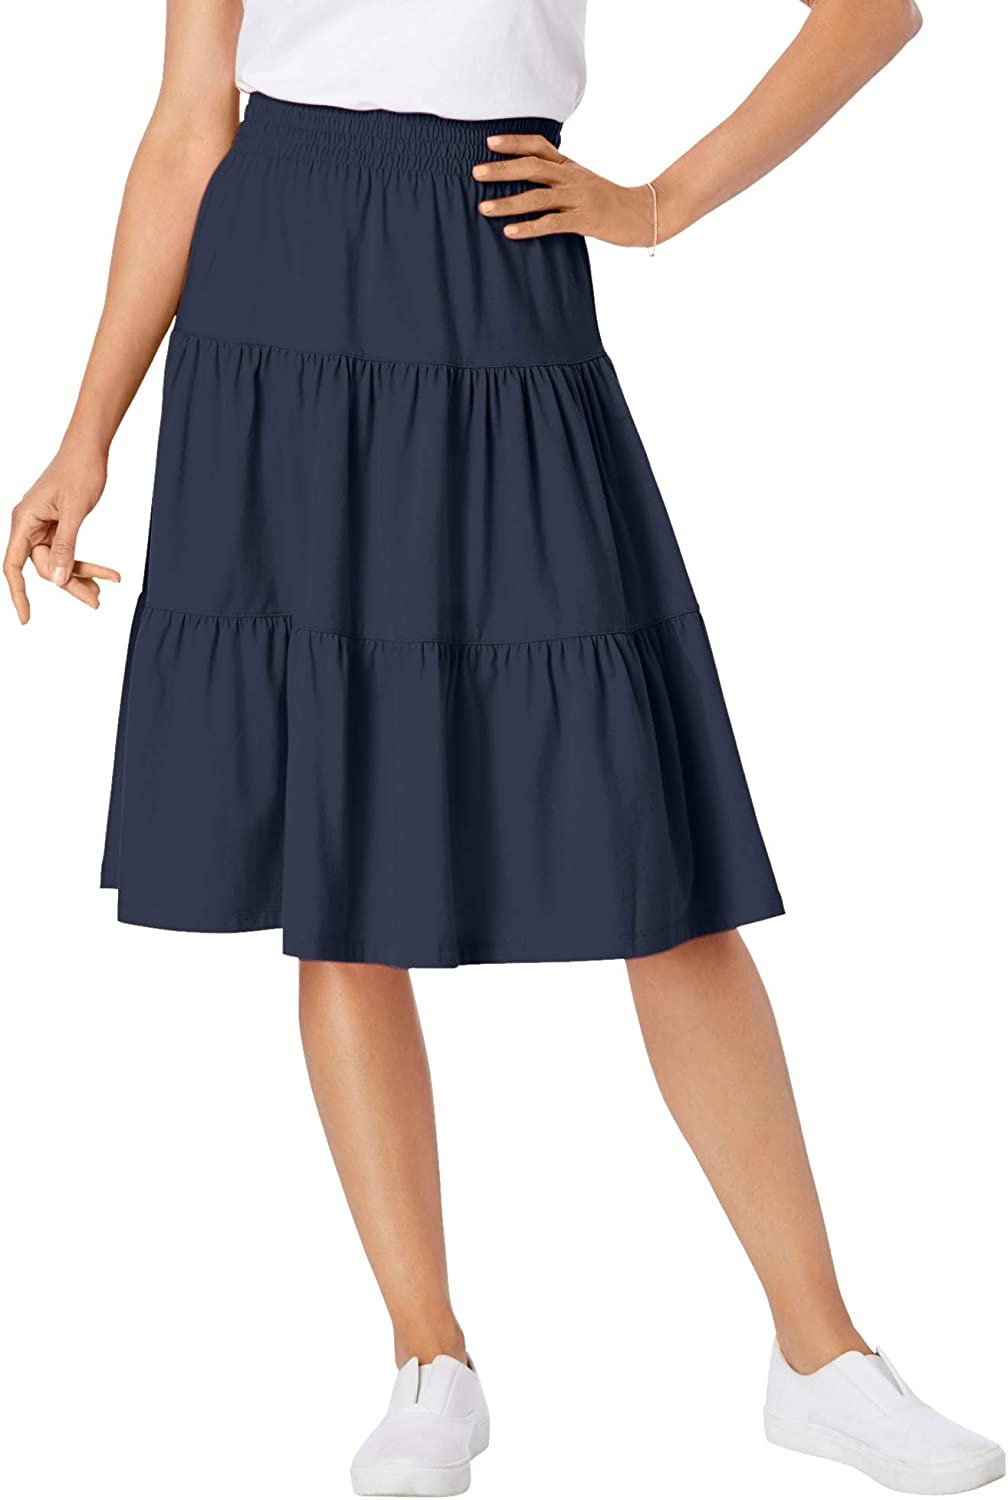 Woman Within Women's Plus Size Jersey Knit Tiered Skirt